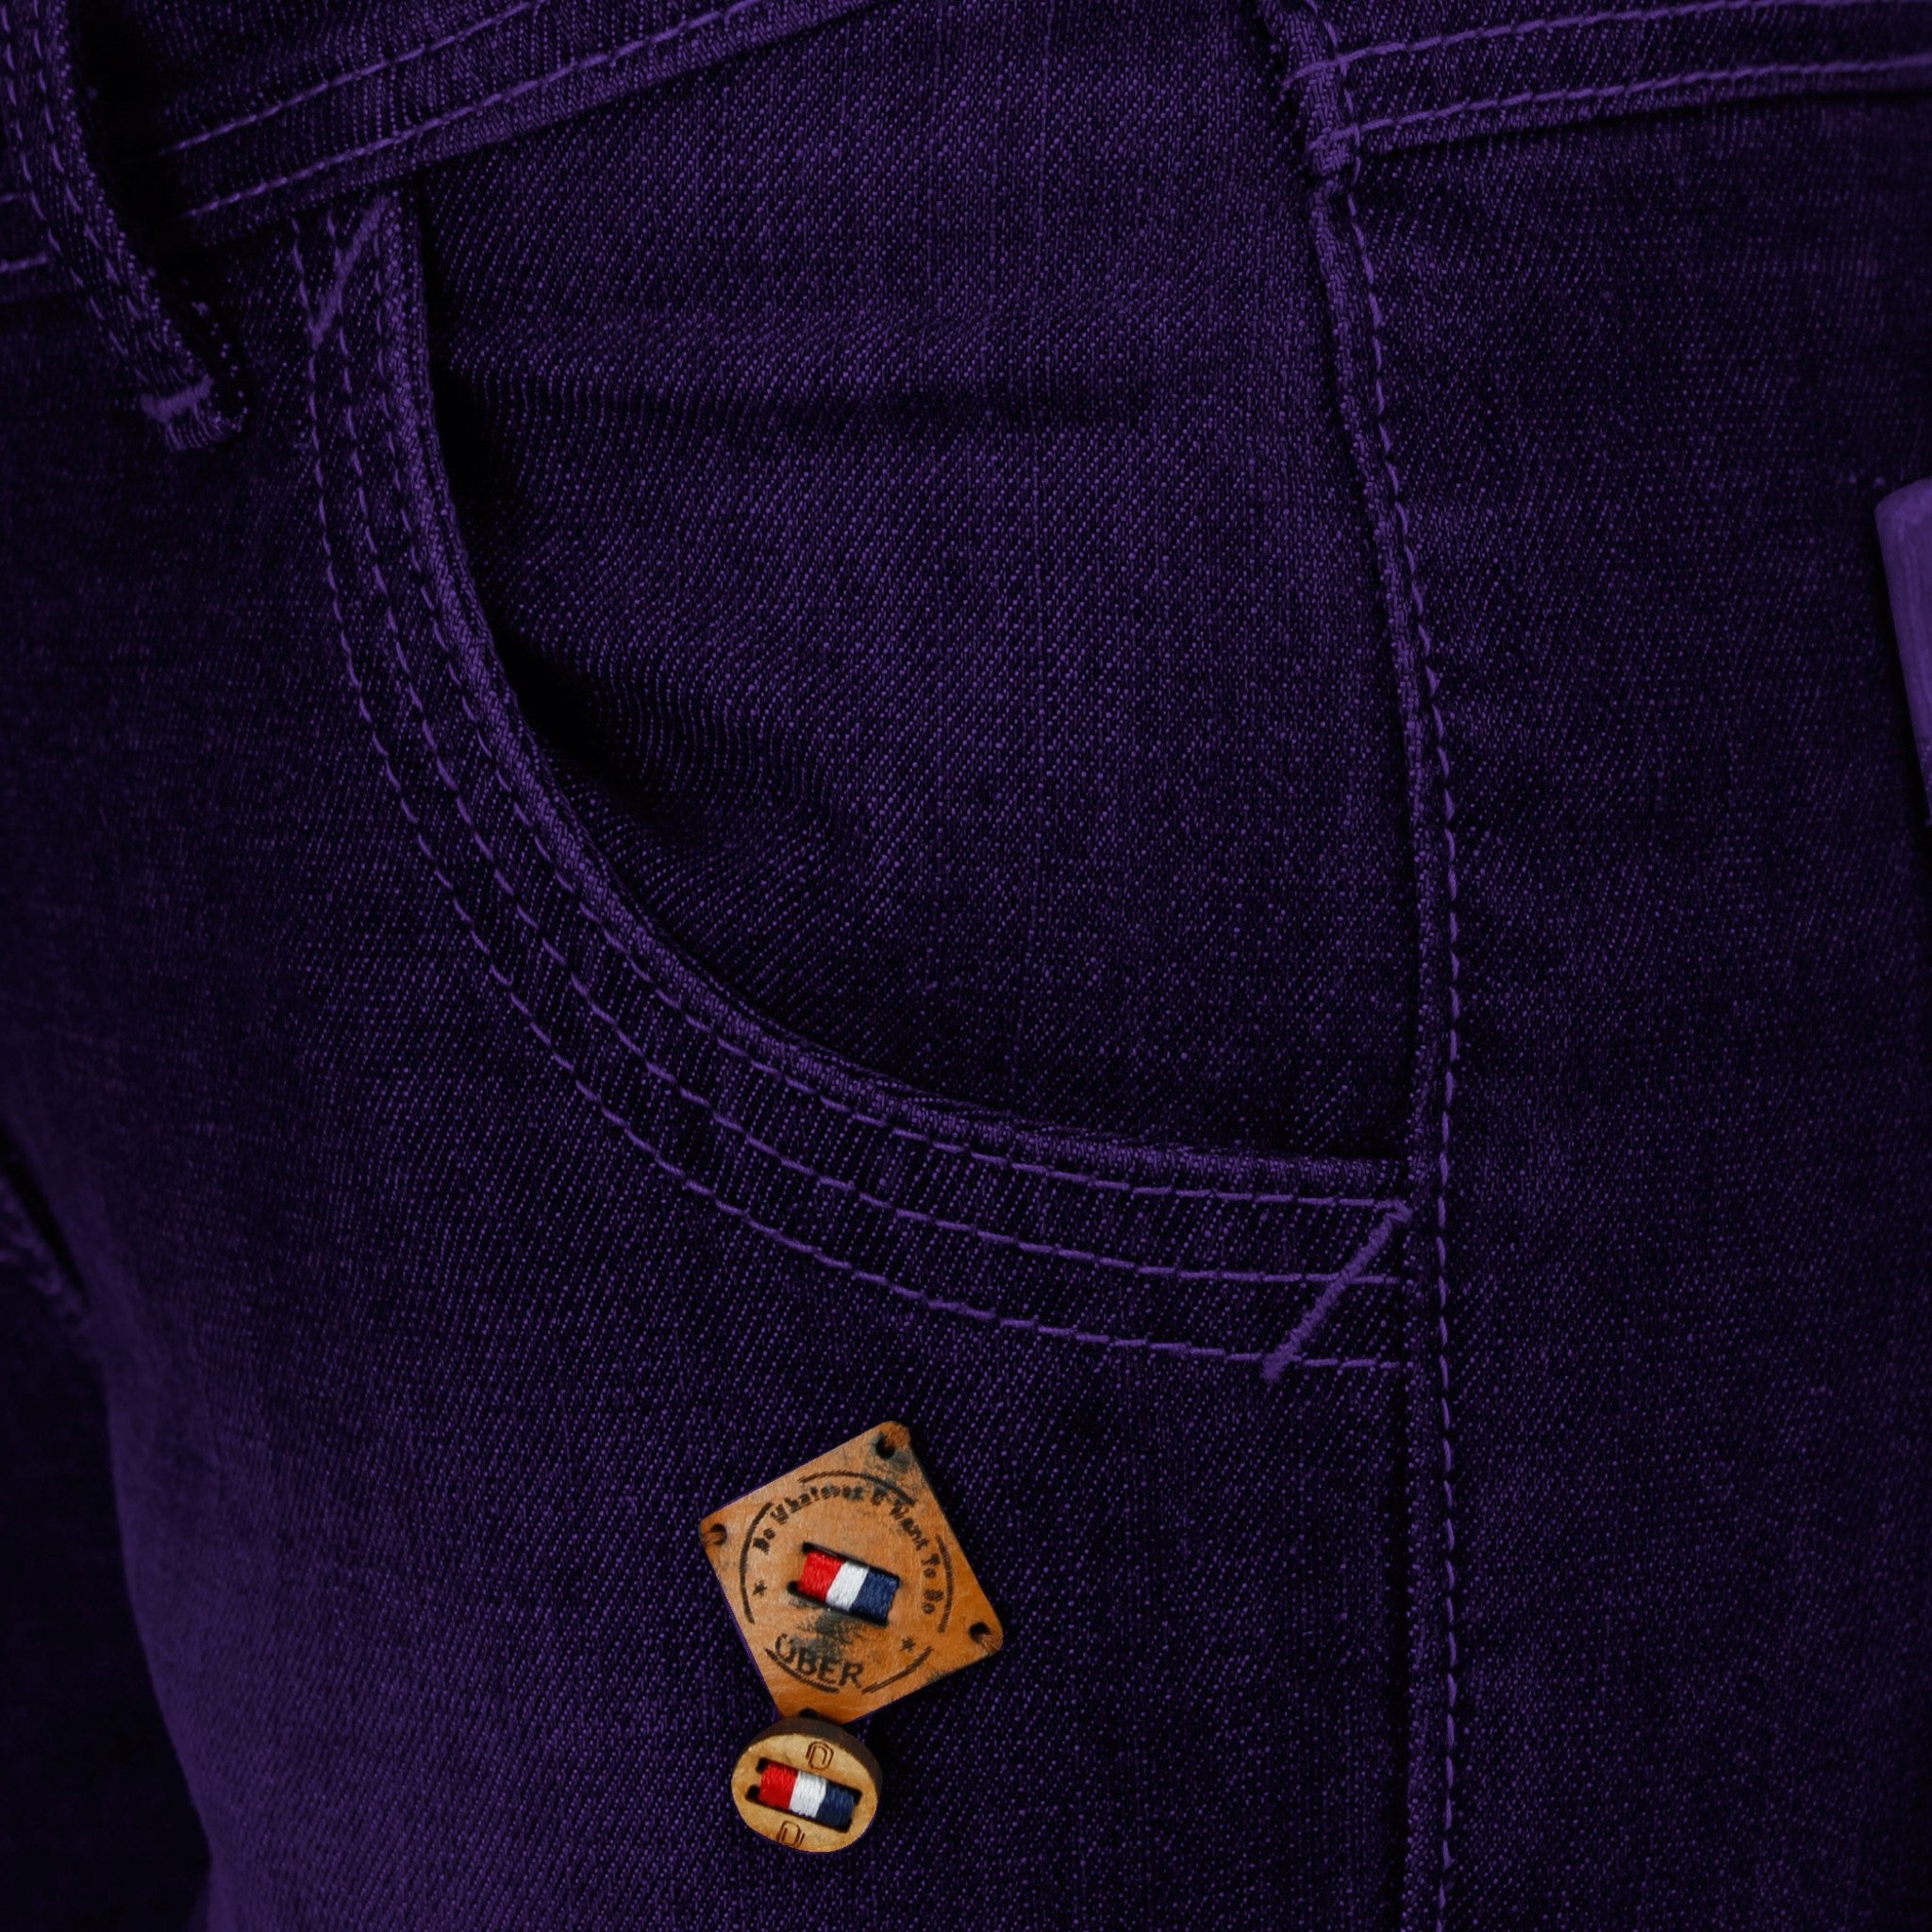 Dark Magenta Denim Capri close up of front pocket